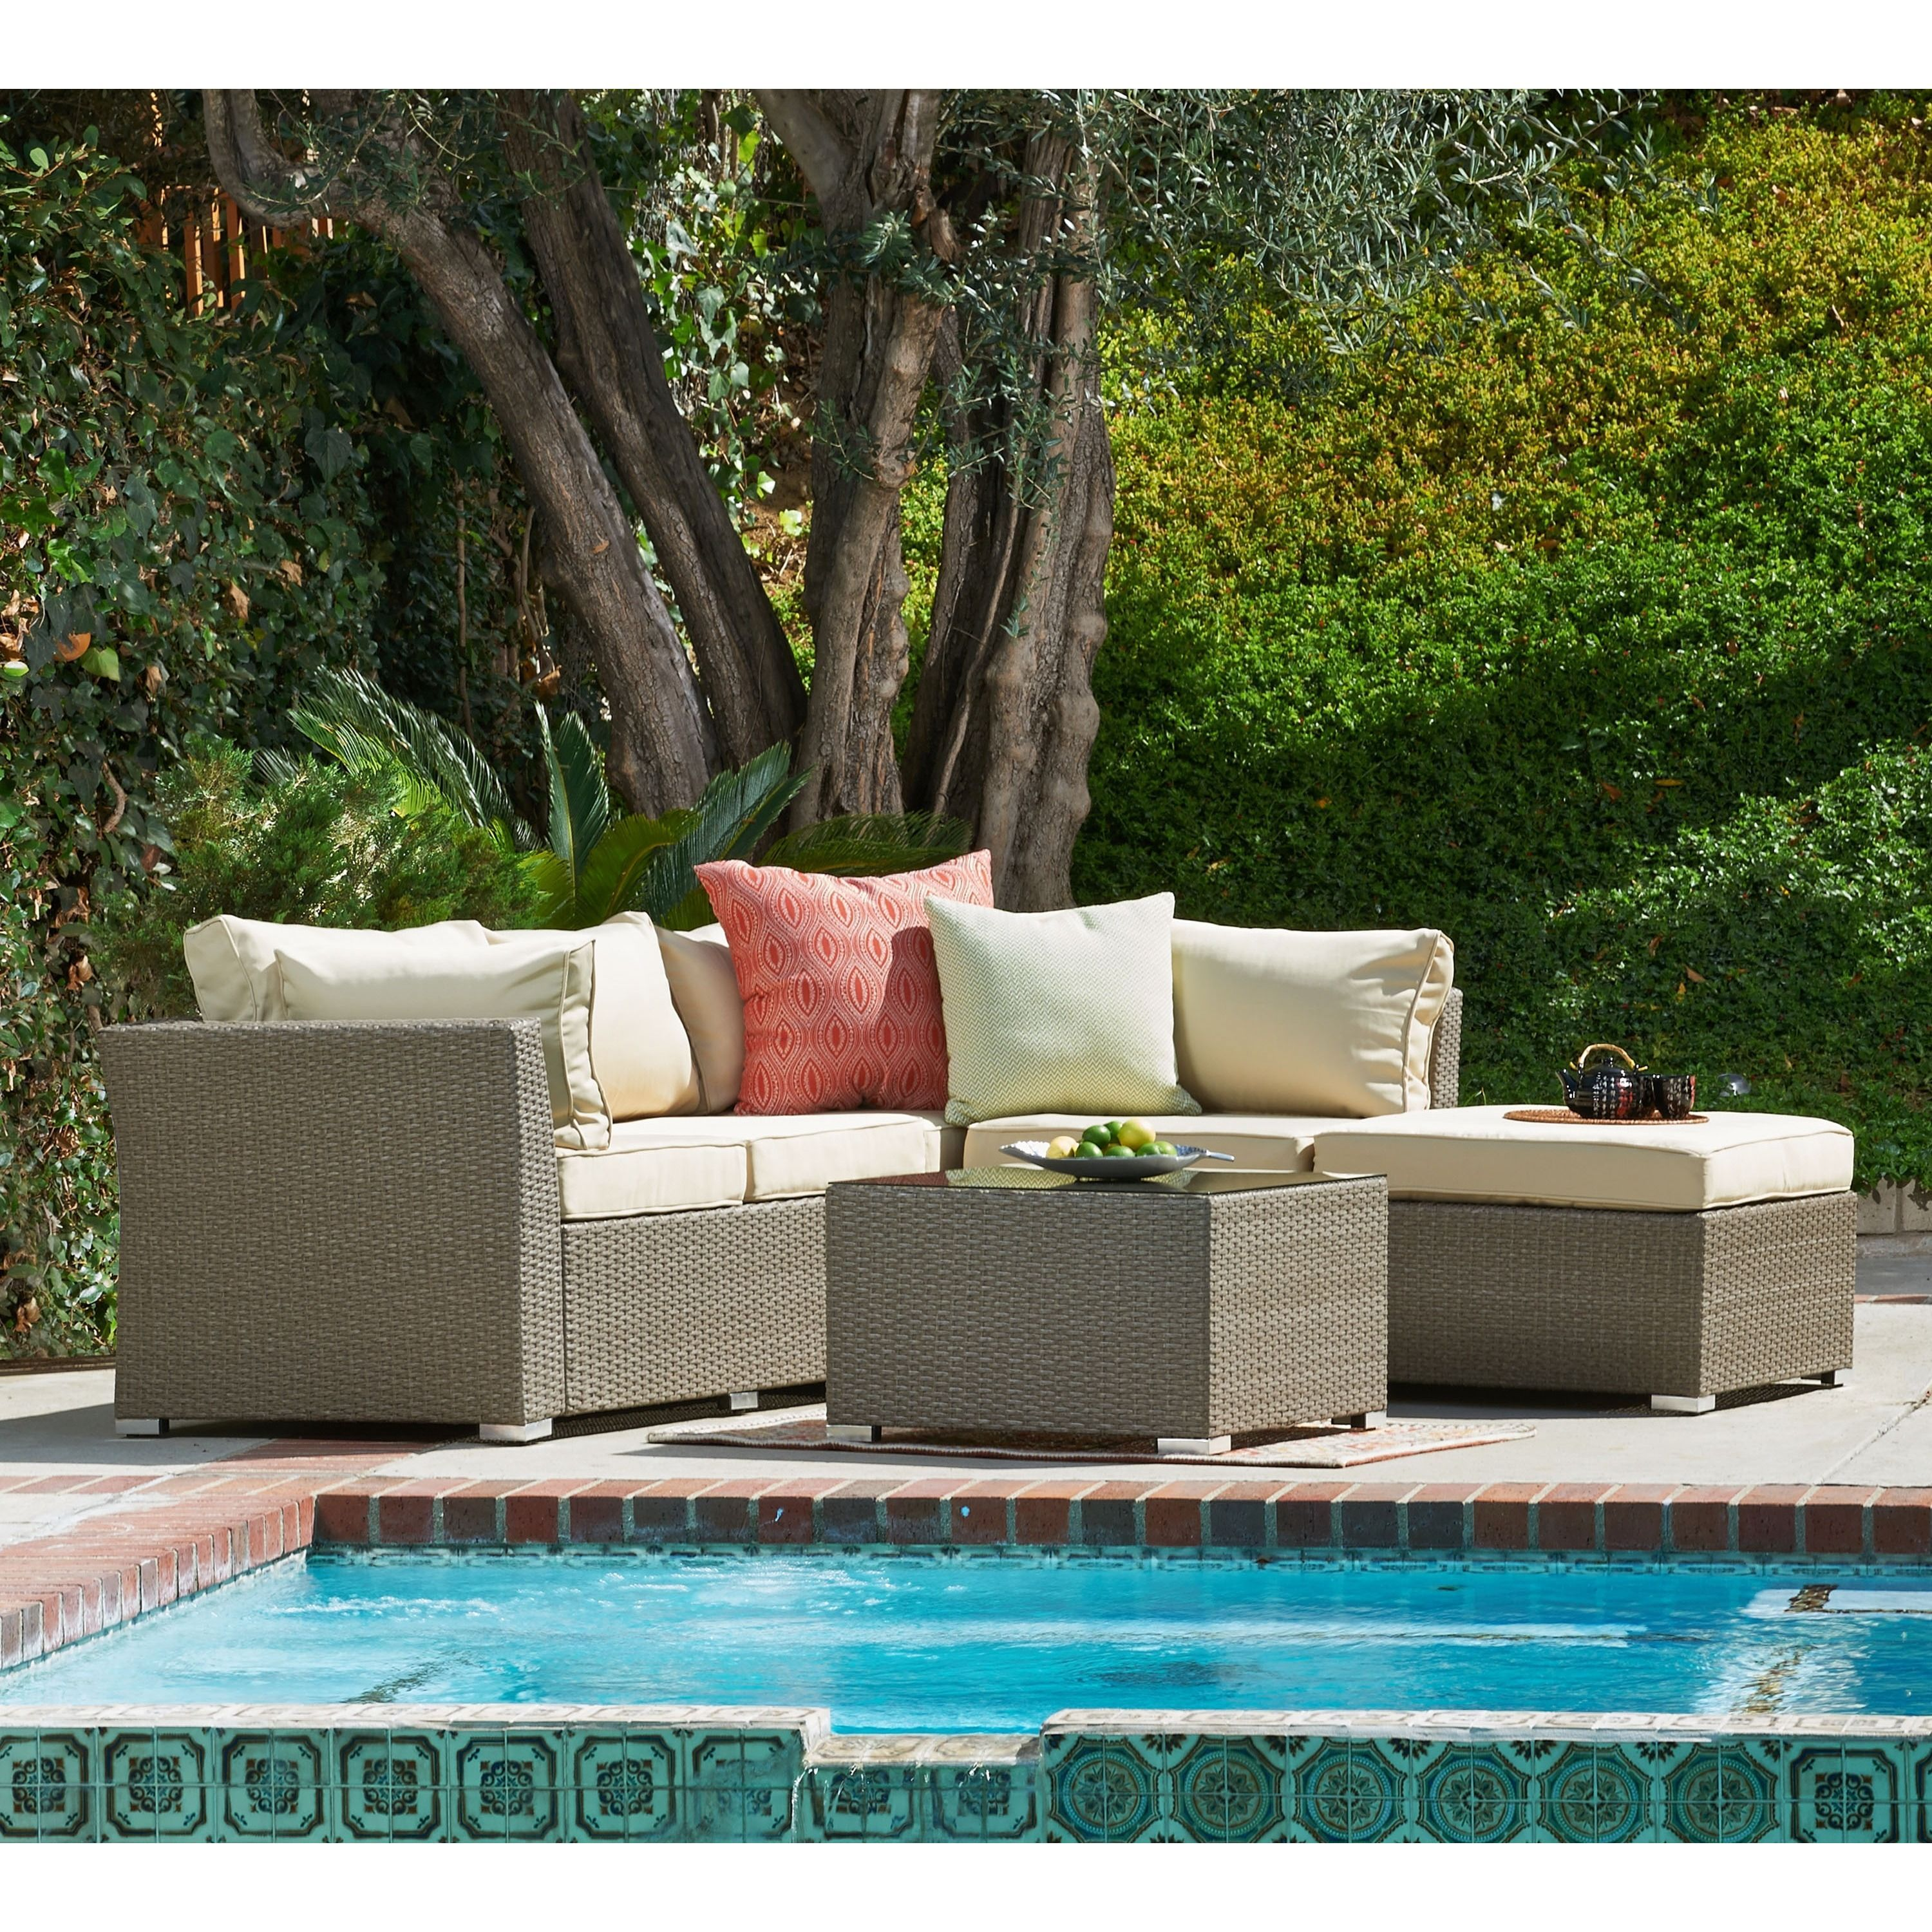 the Hom Jicaro 5 piece Outdoor Wicker Sectional Sofa Set by THY